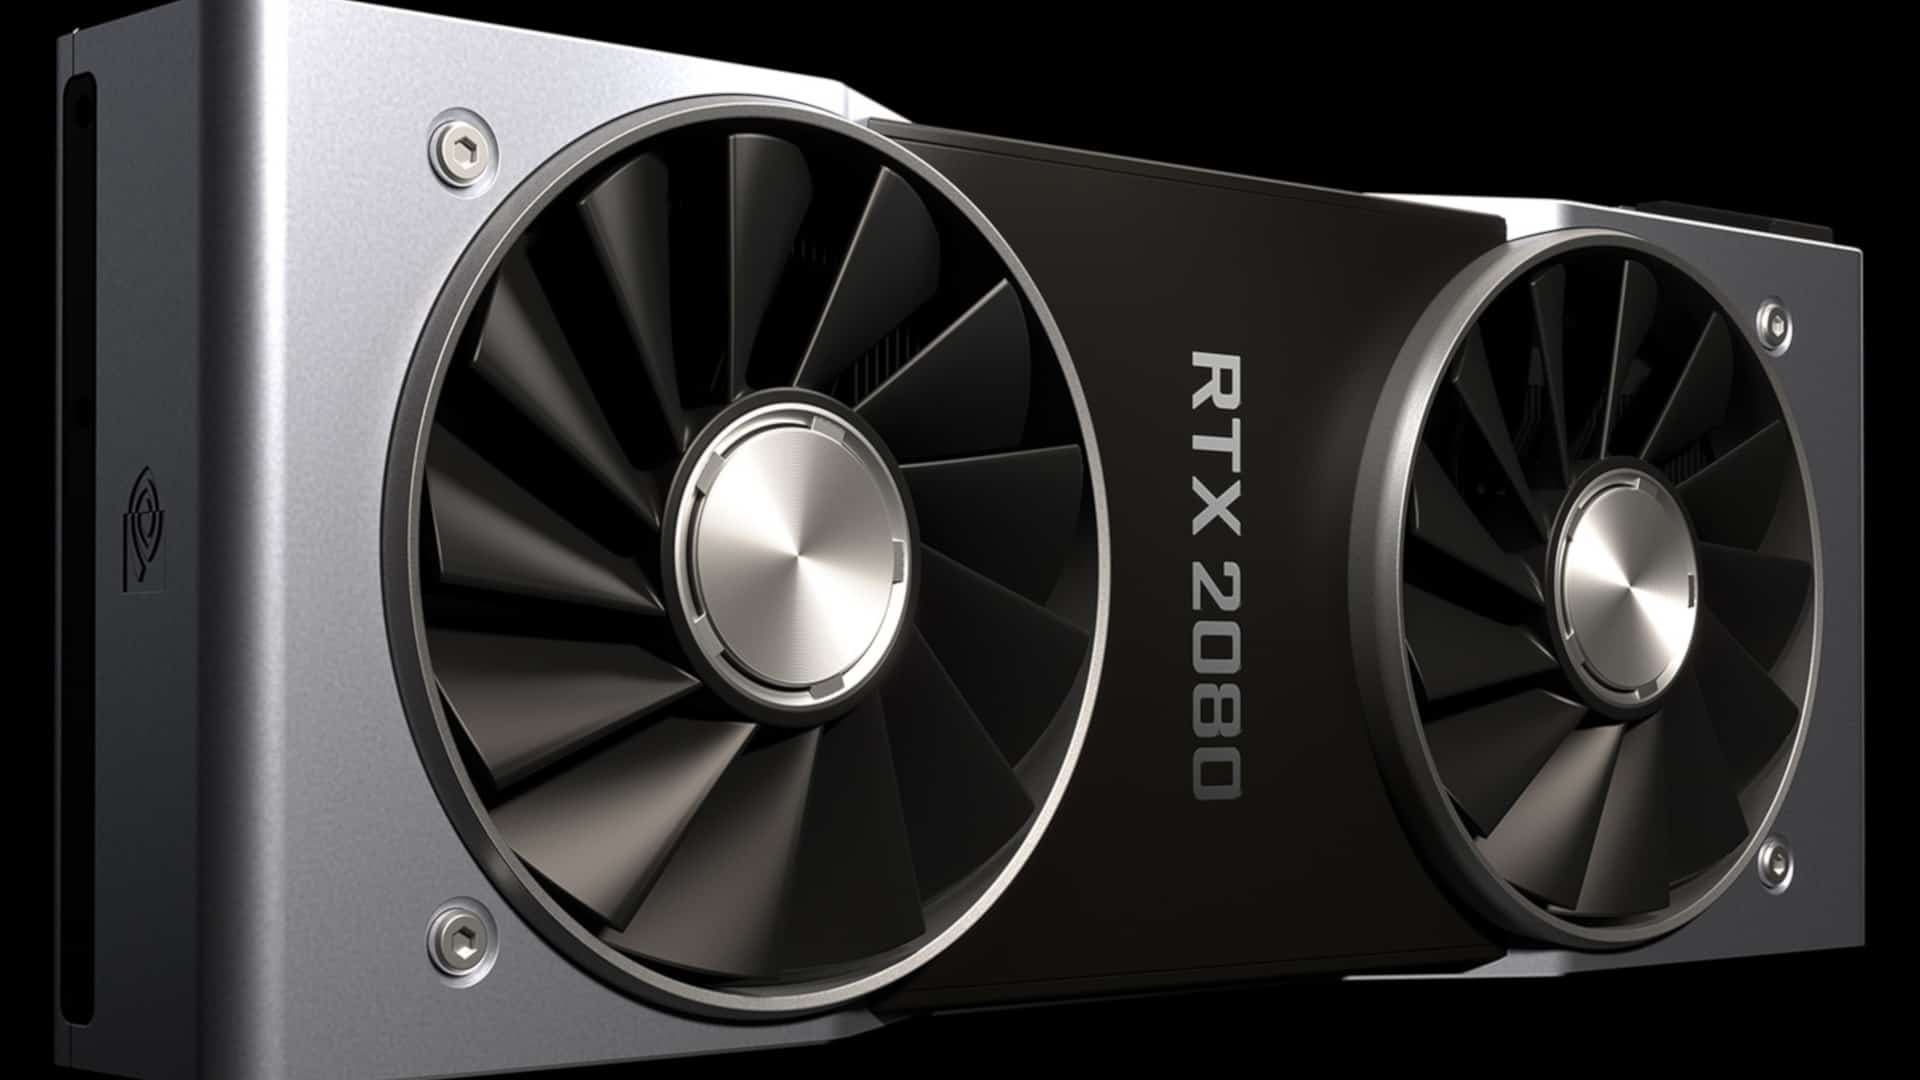 Nvidia RTX 2080 Ti launch event at Gamescom 2018